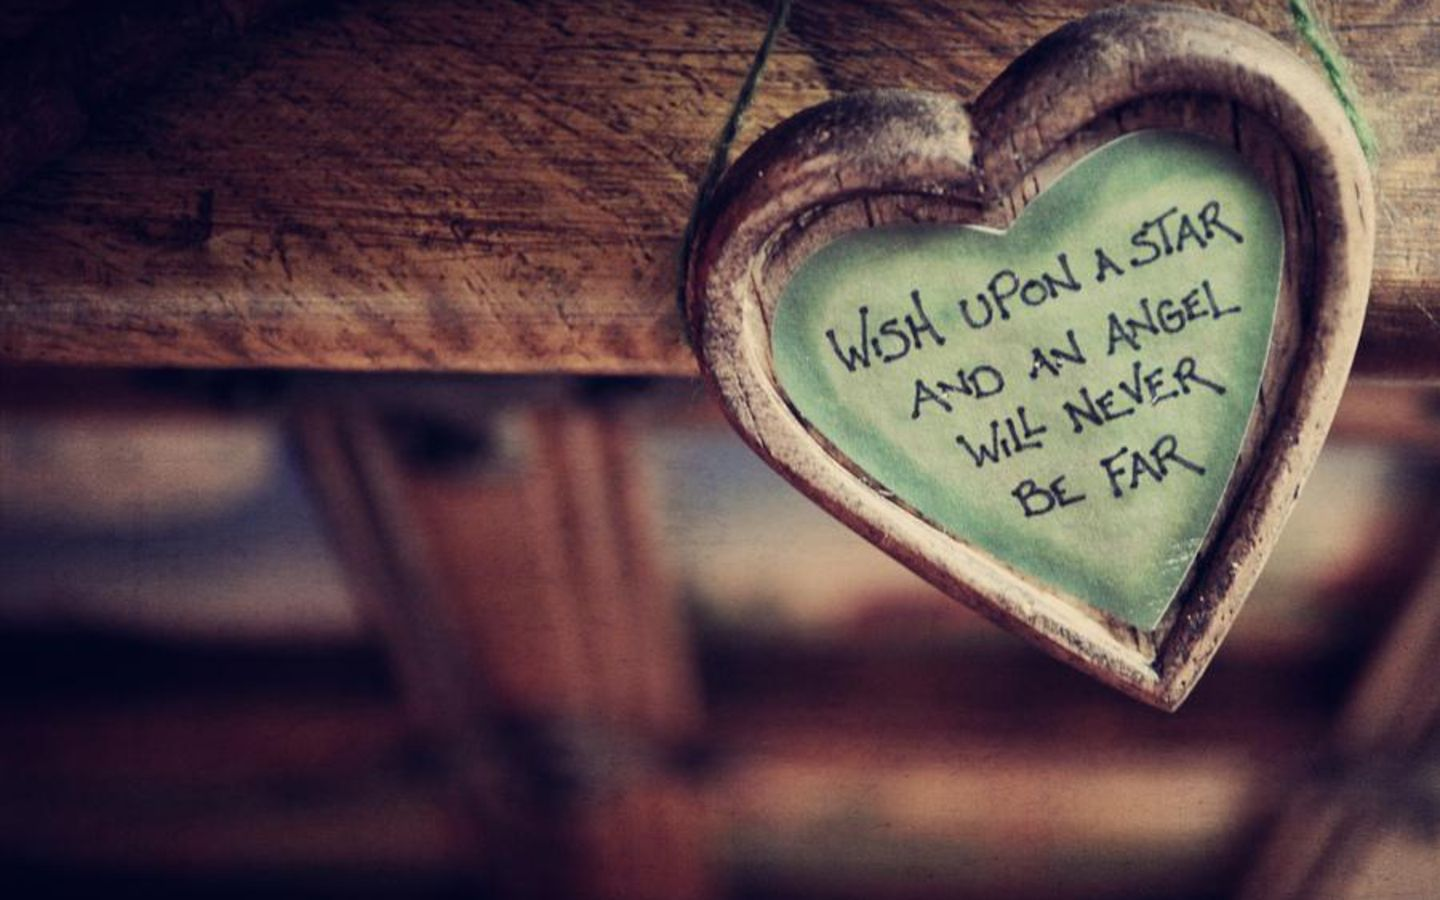 Wish You Happy Love Quotes For Facebook Timeline Cover Words To